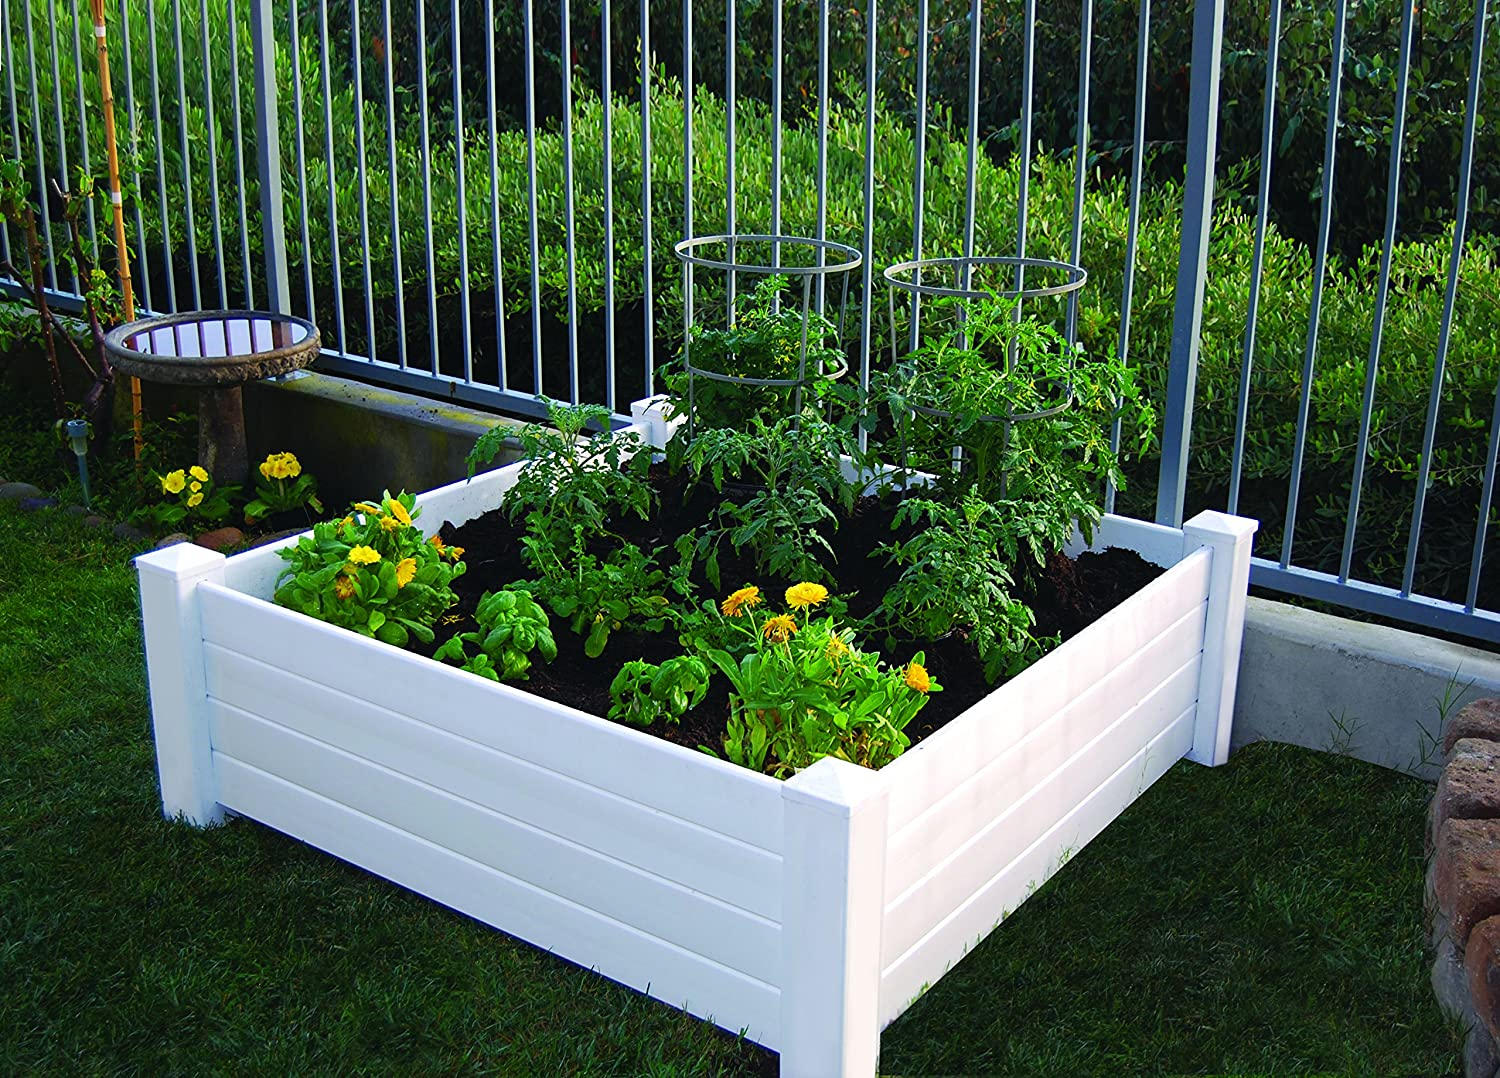 ... Garden Design With Amazon.com : Lifetime Raised Garde Bed Kit, Beds And  With